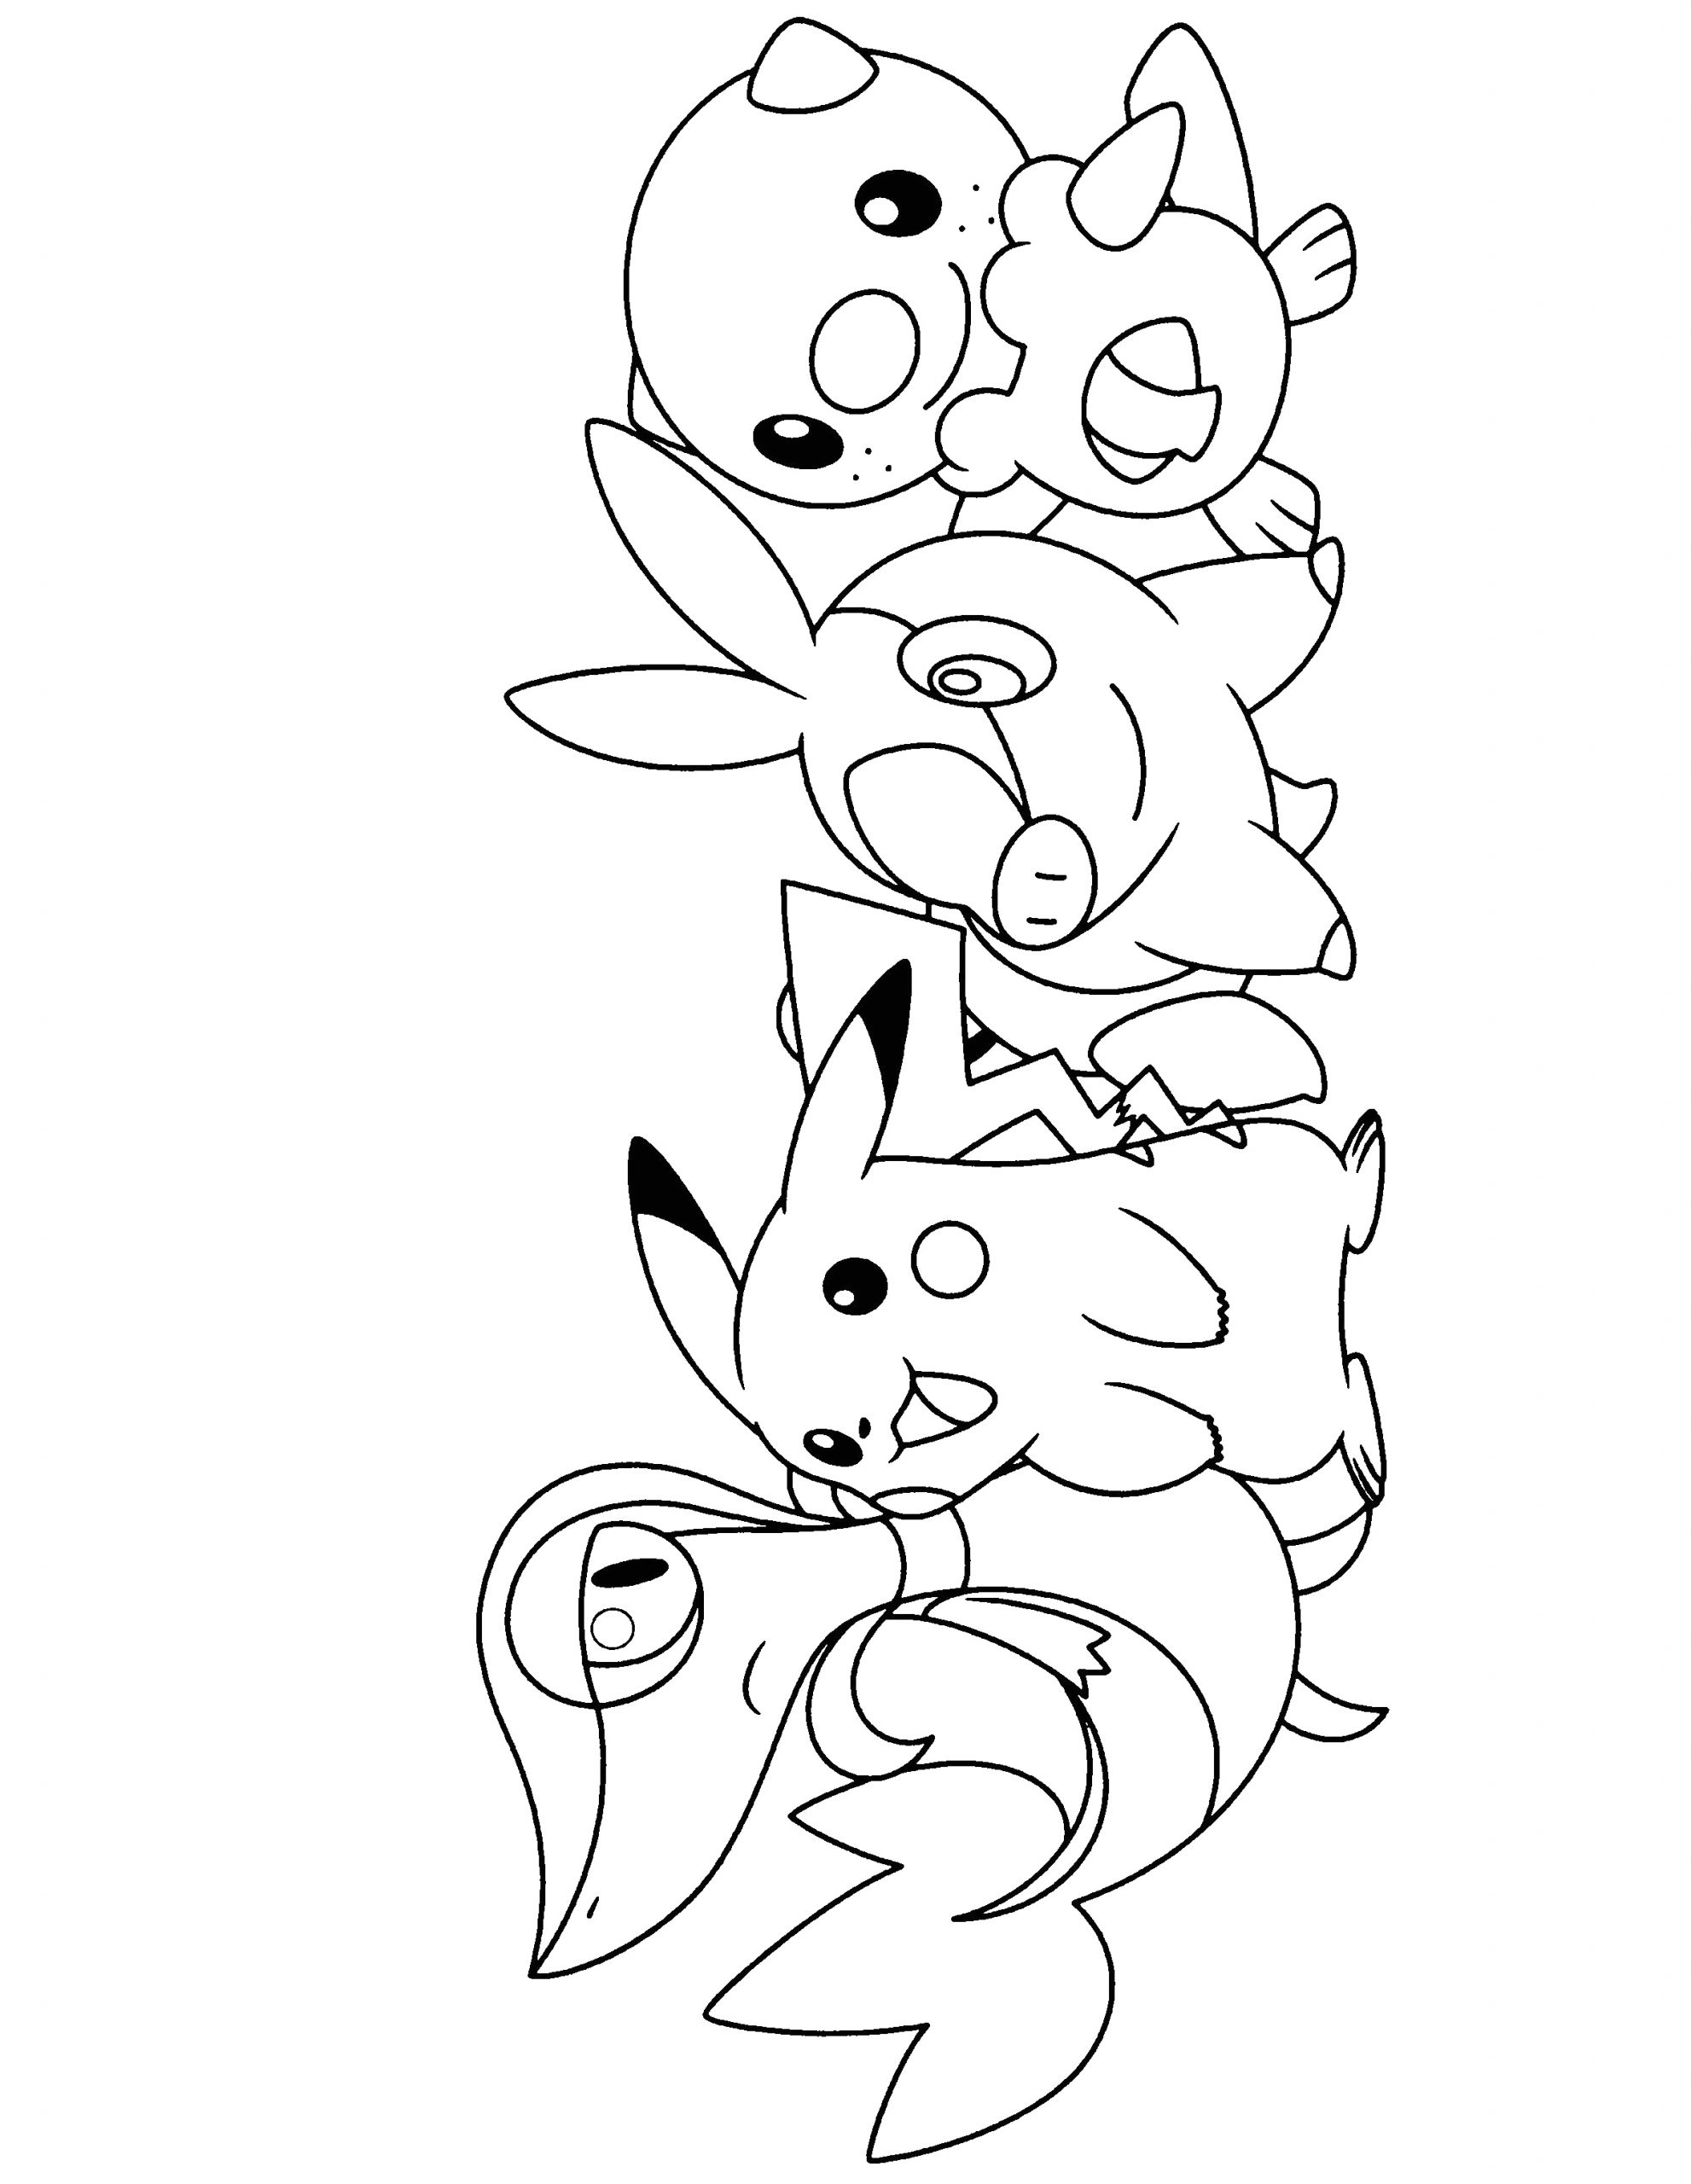 Free Pokemon Coloring Pages Black and White Coloring Pokemon Black and White – Through the Thousand